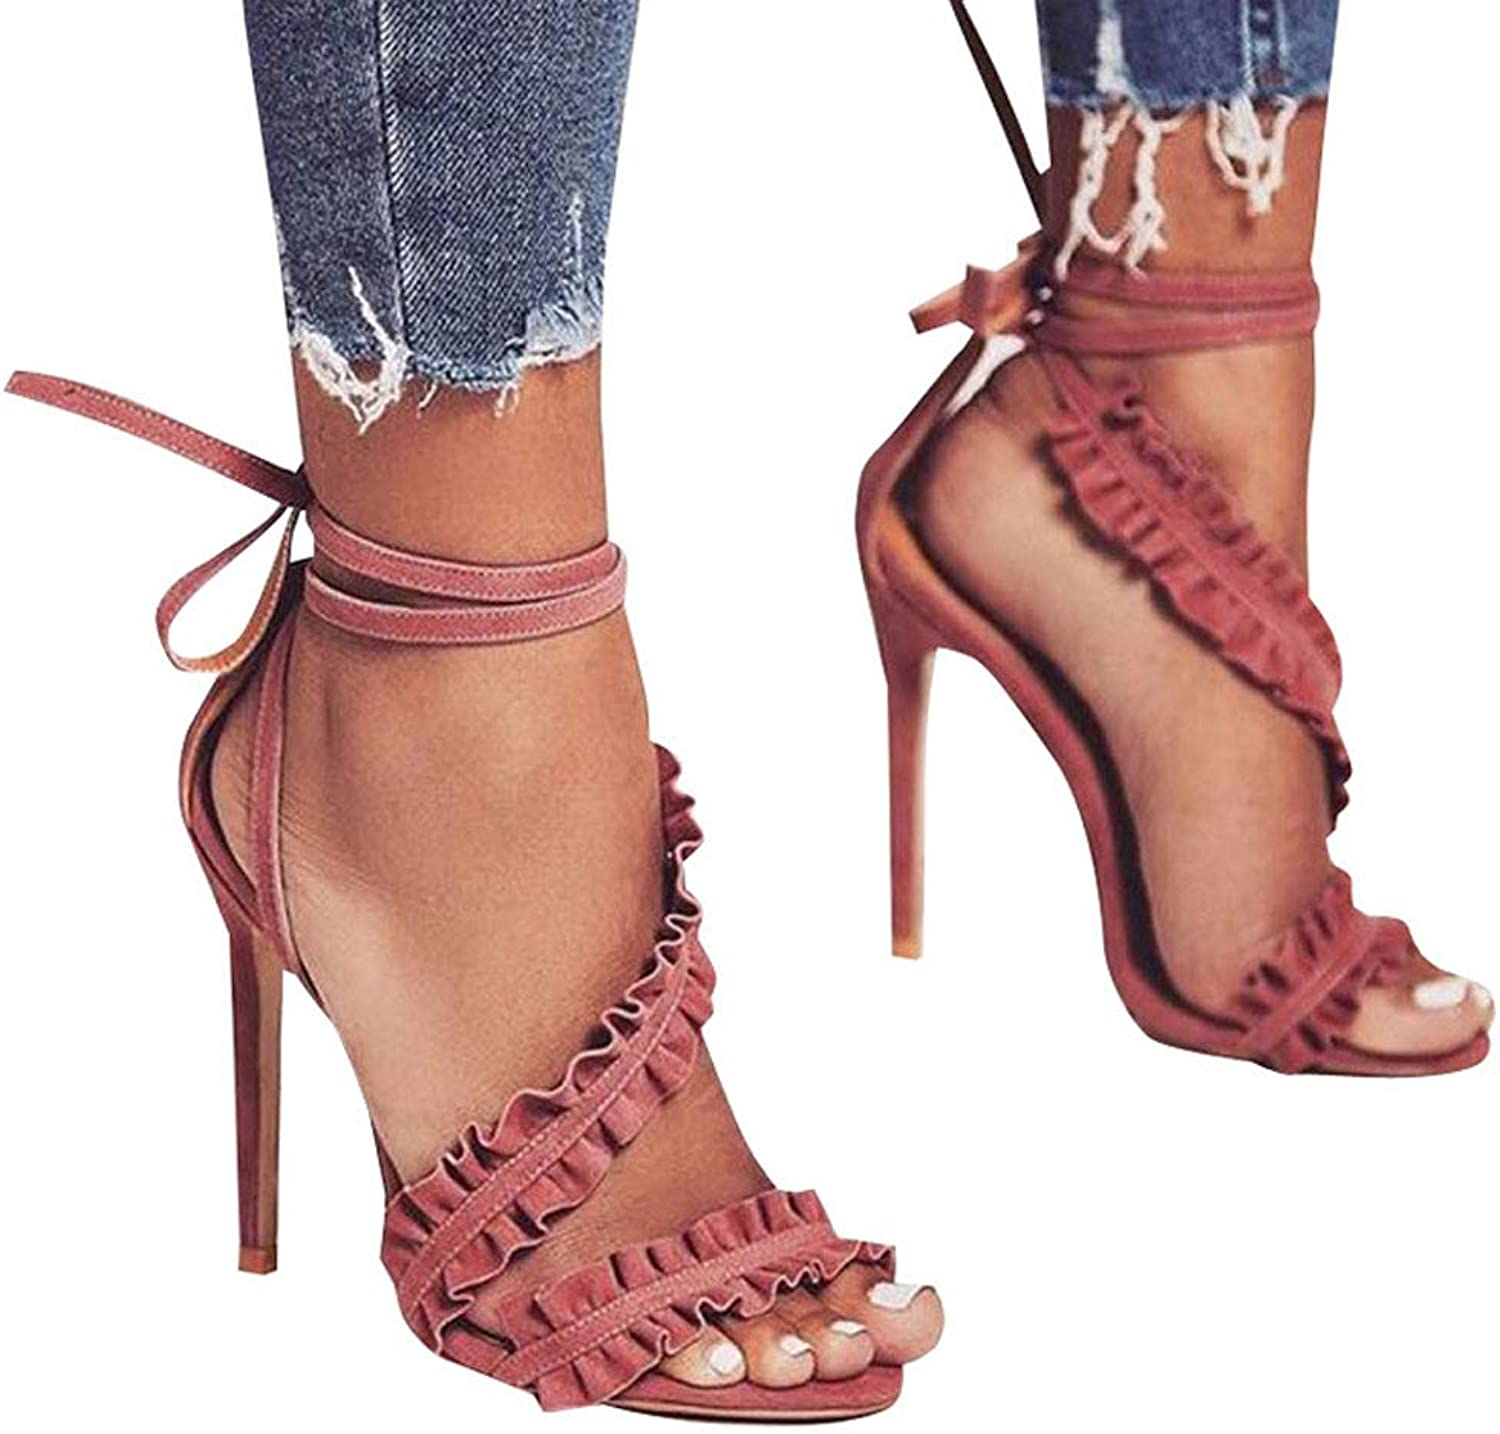 Women's Fashion High Heels, Ladies' Sexy Lotus Leaf Lace Ankle Straps Sandals Open Toe Fashion Wild On Dress Party shoes for Summer